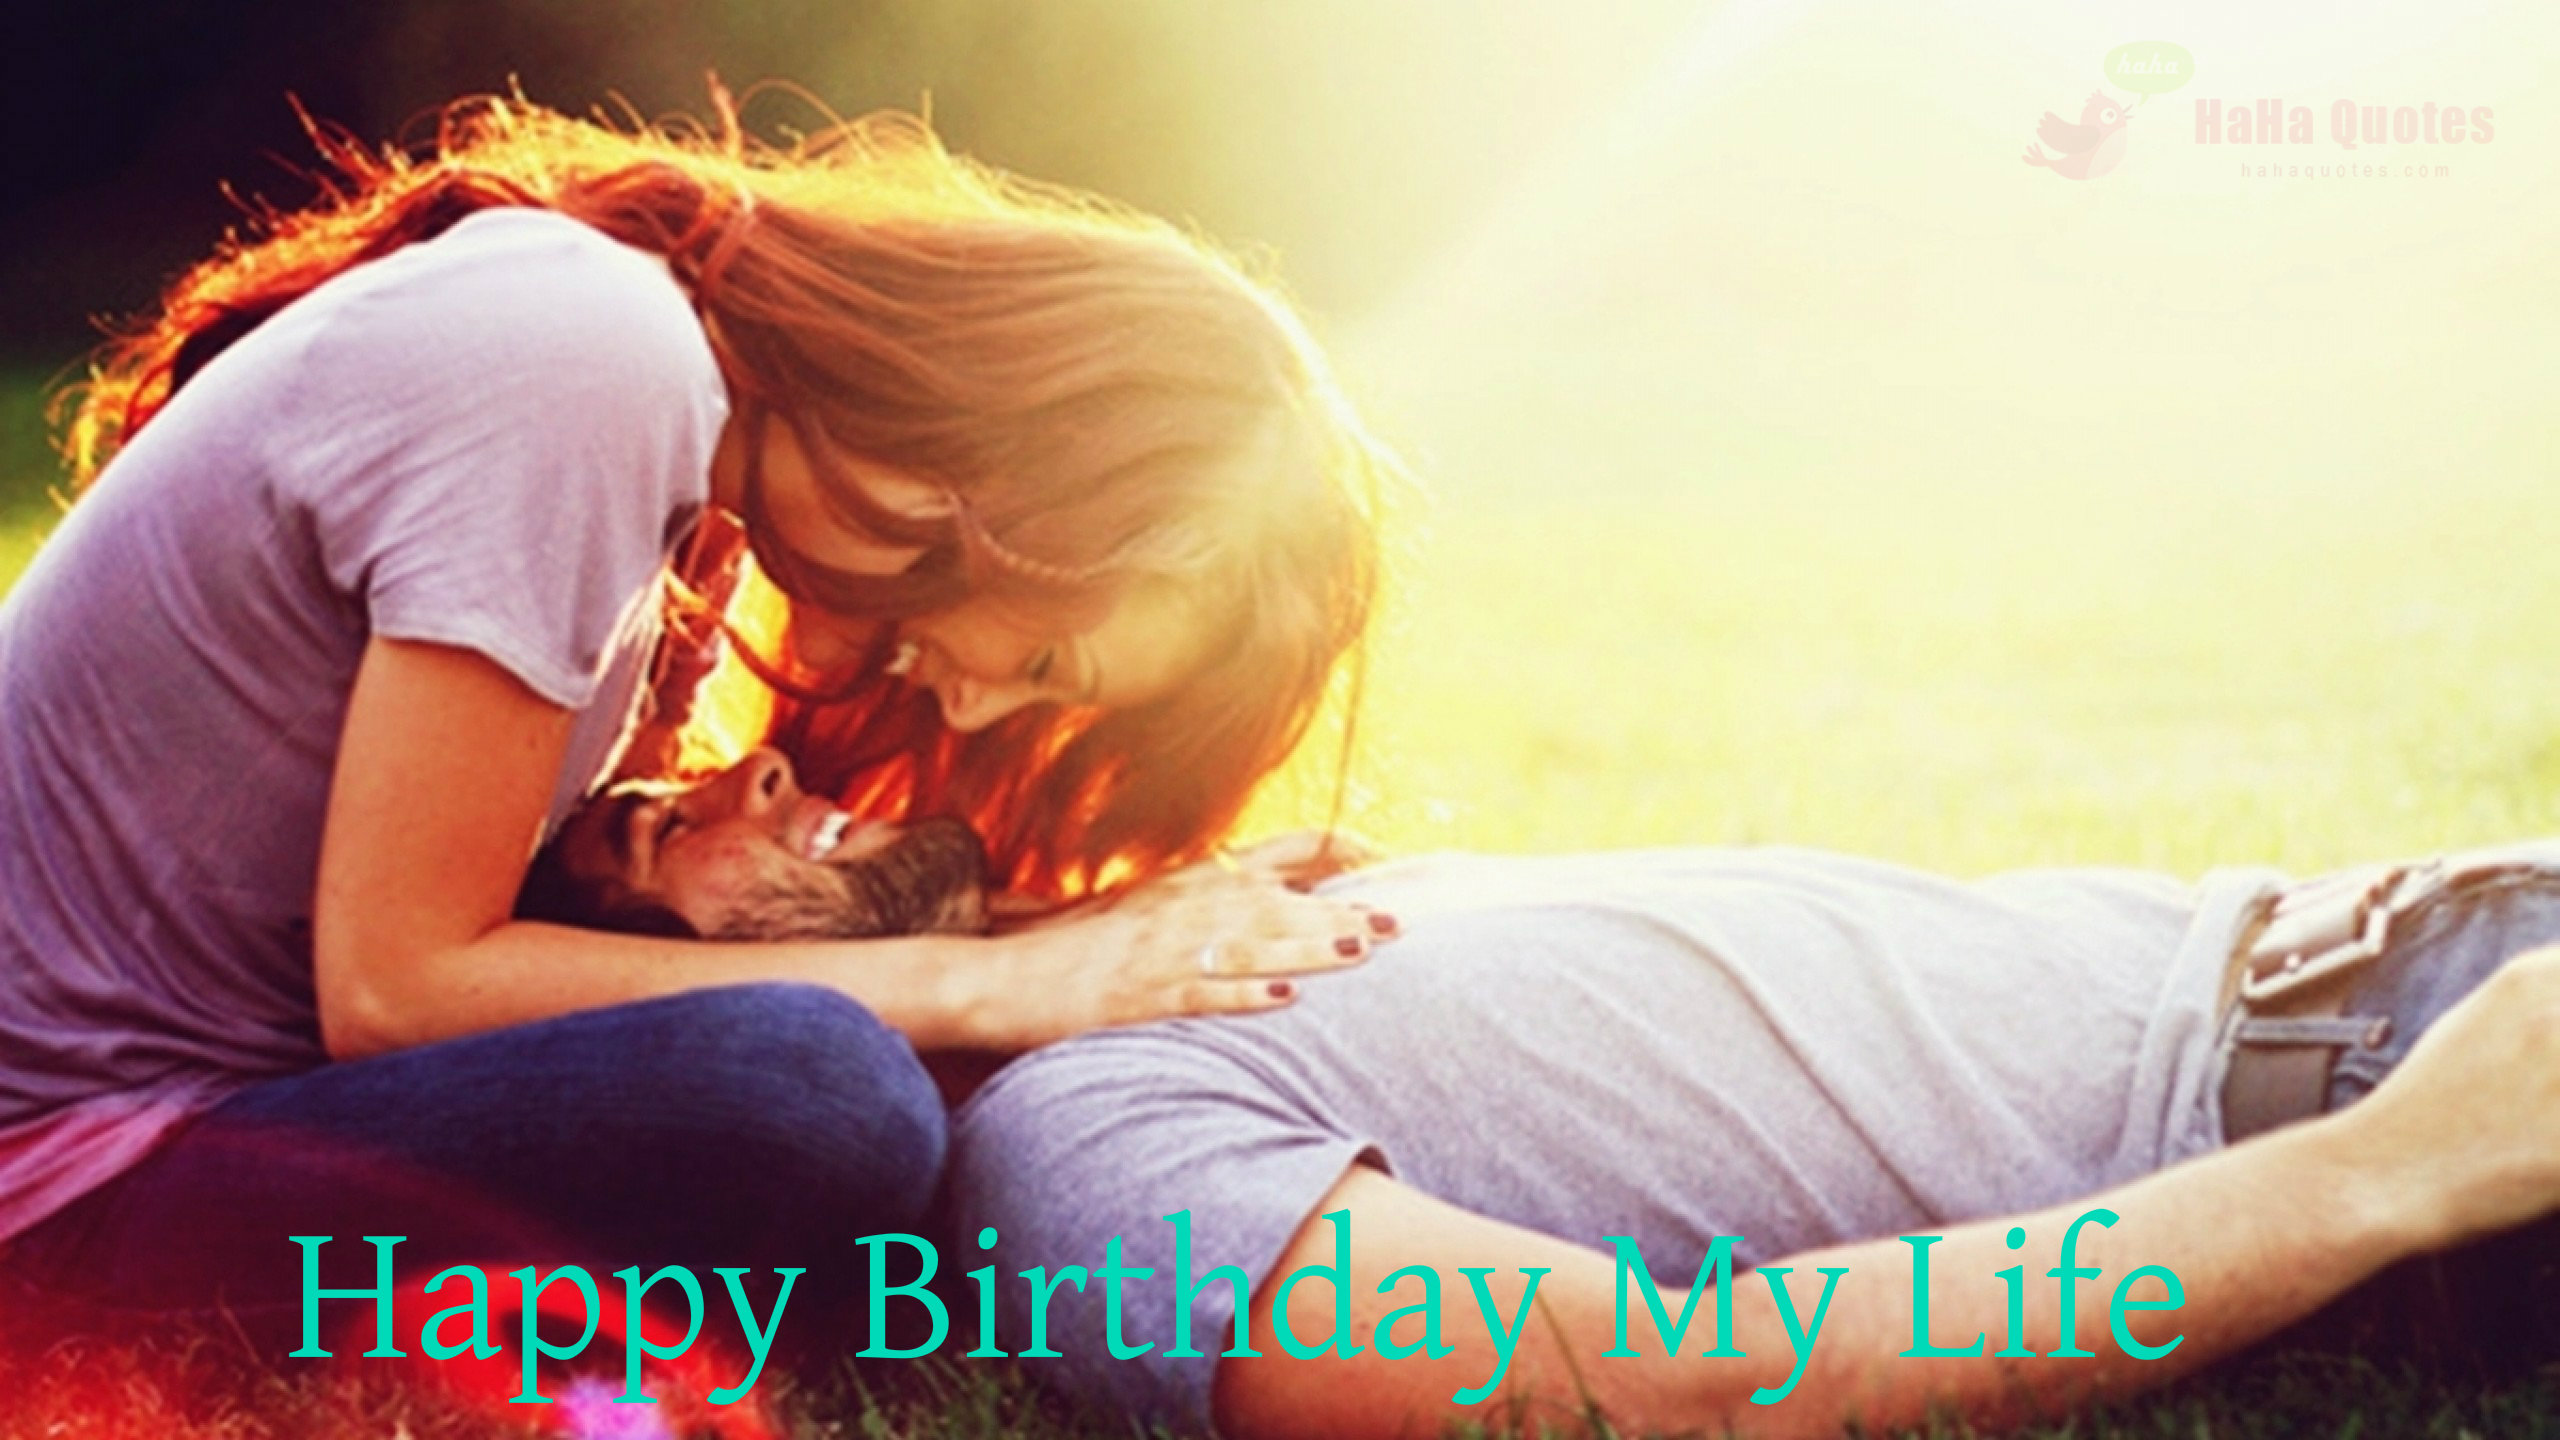 birthday wallpaper for lover ; Happy-Birthday-HD-Images-for-Lover-Download